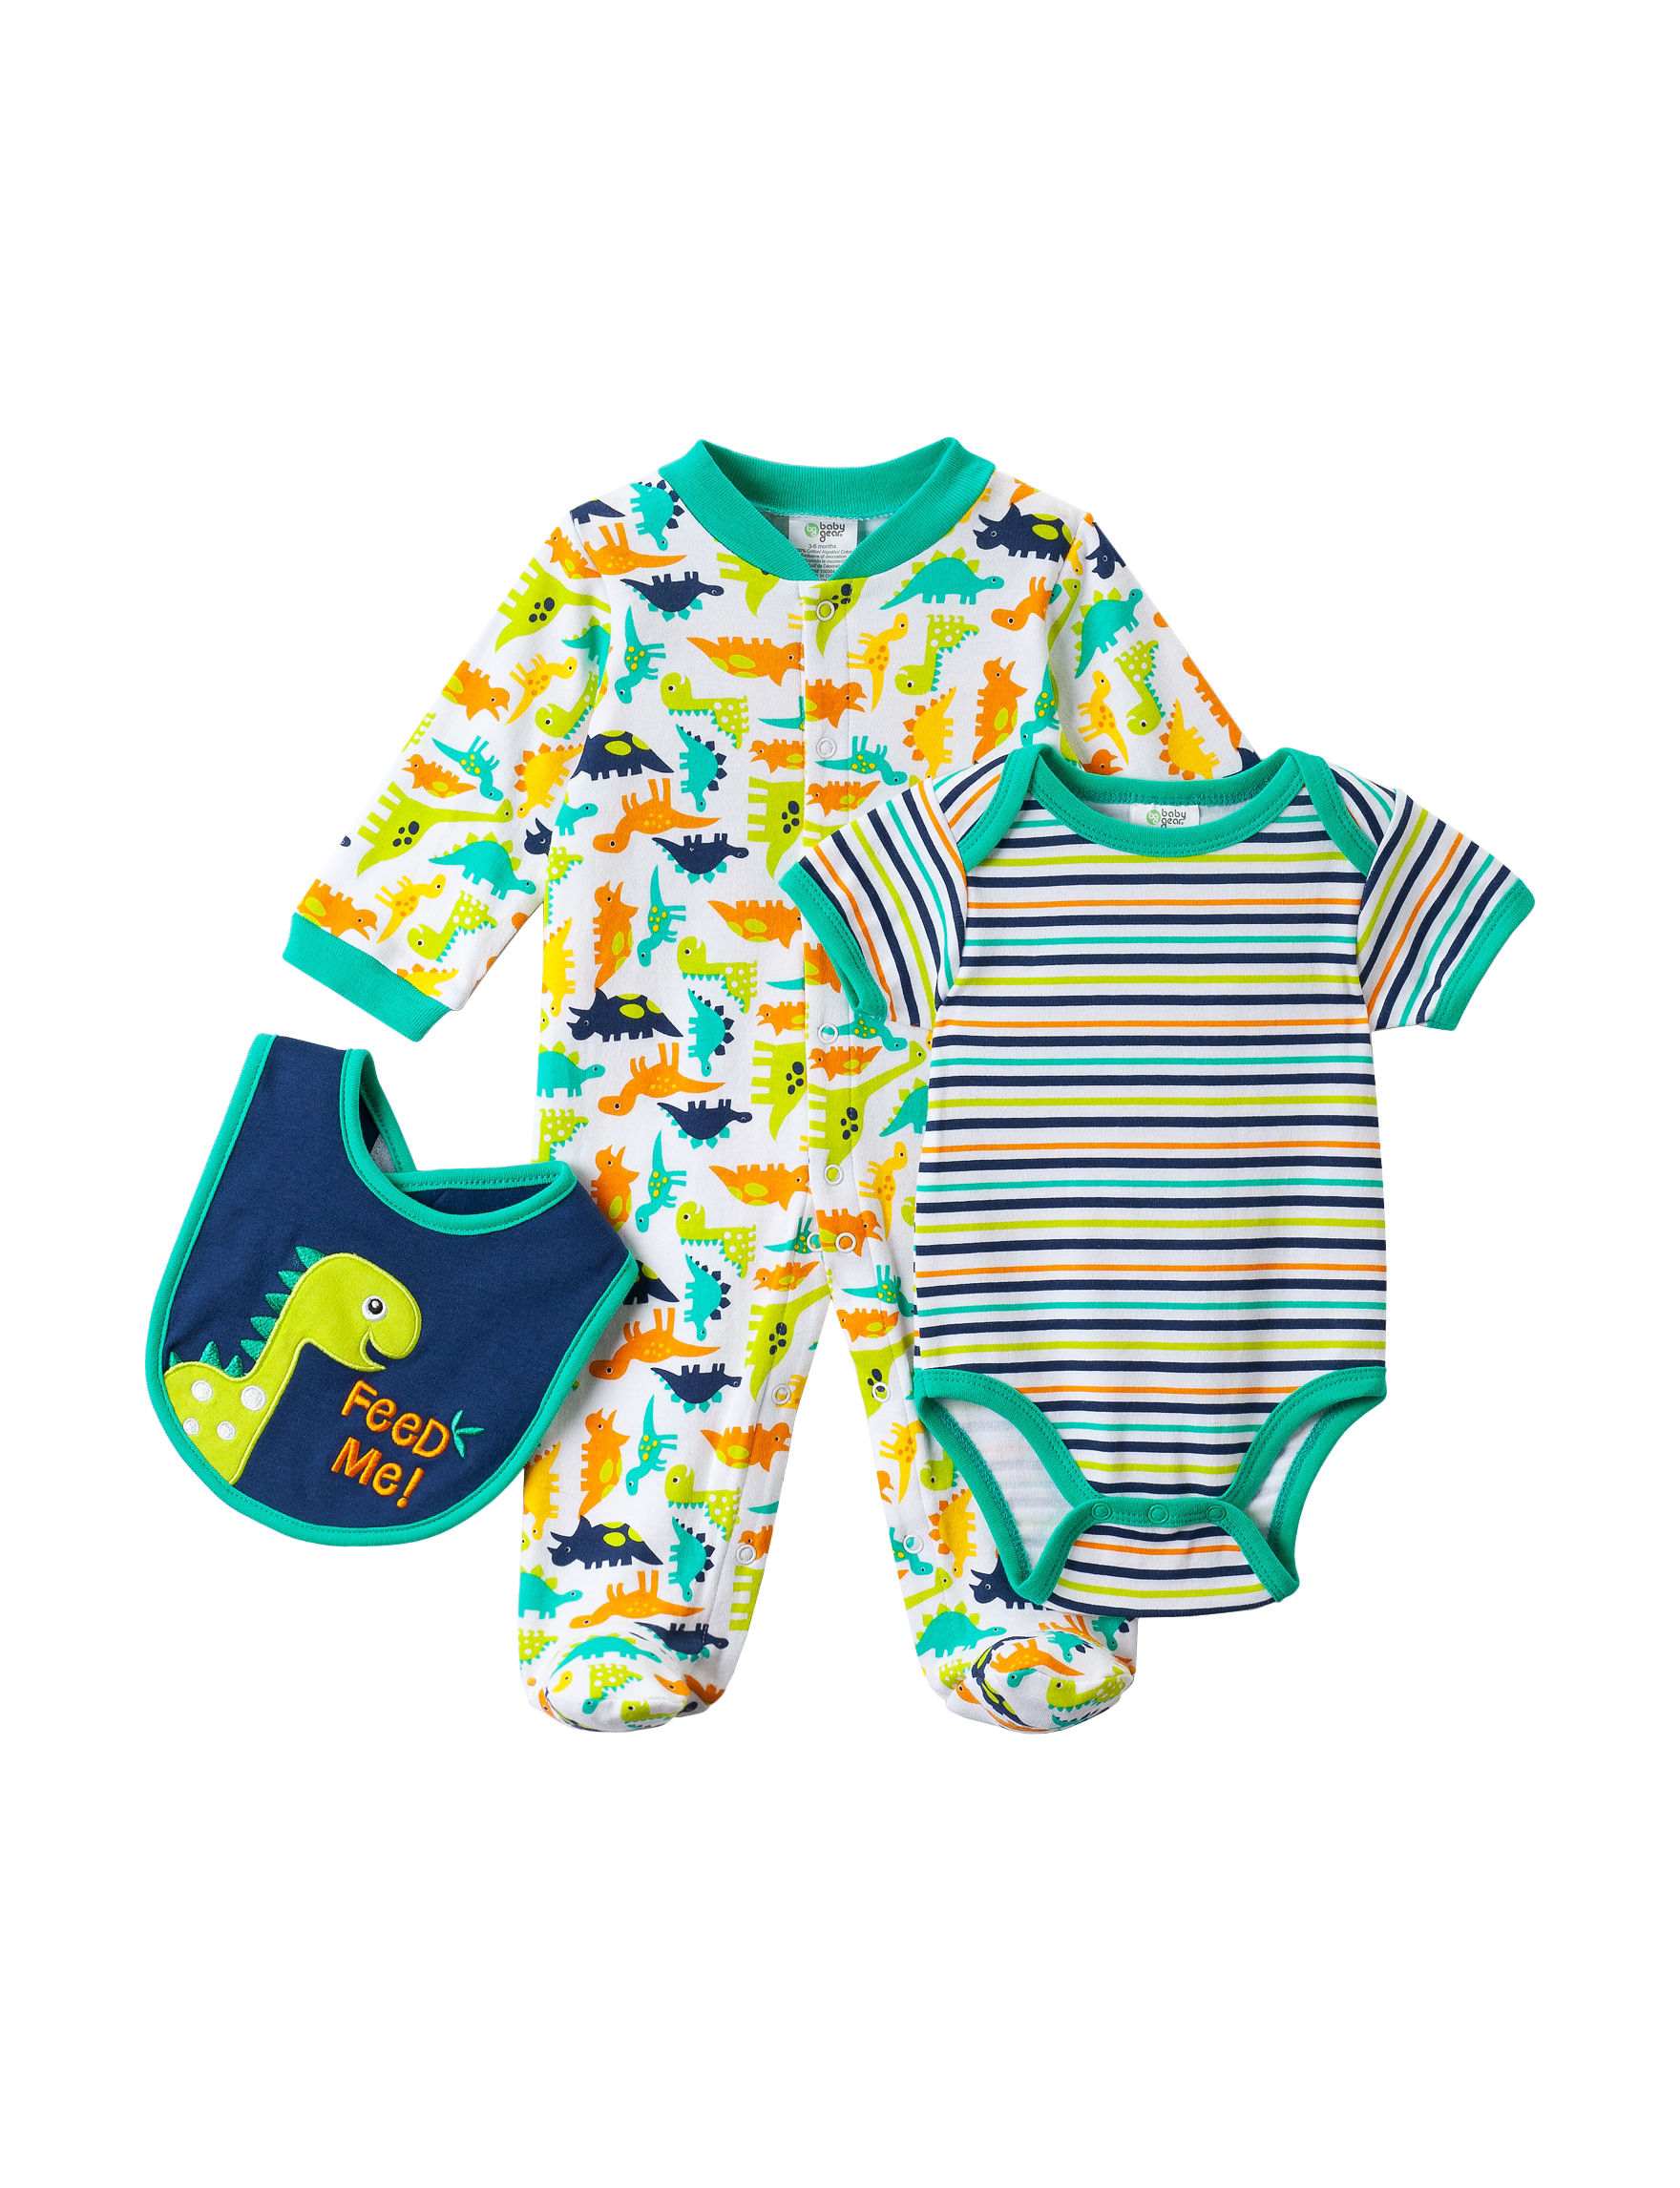 Baby Gear Turquoise